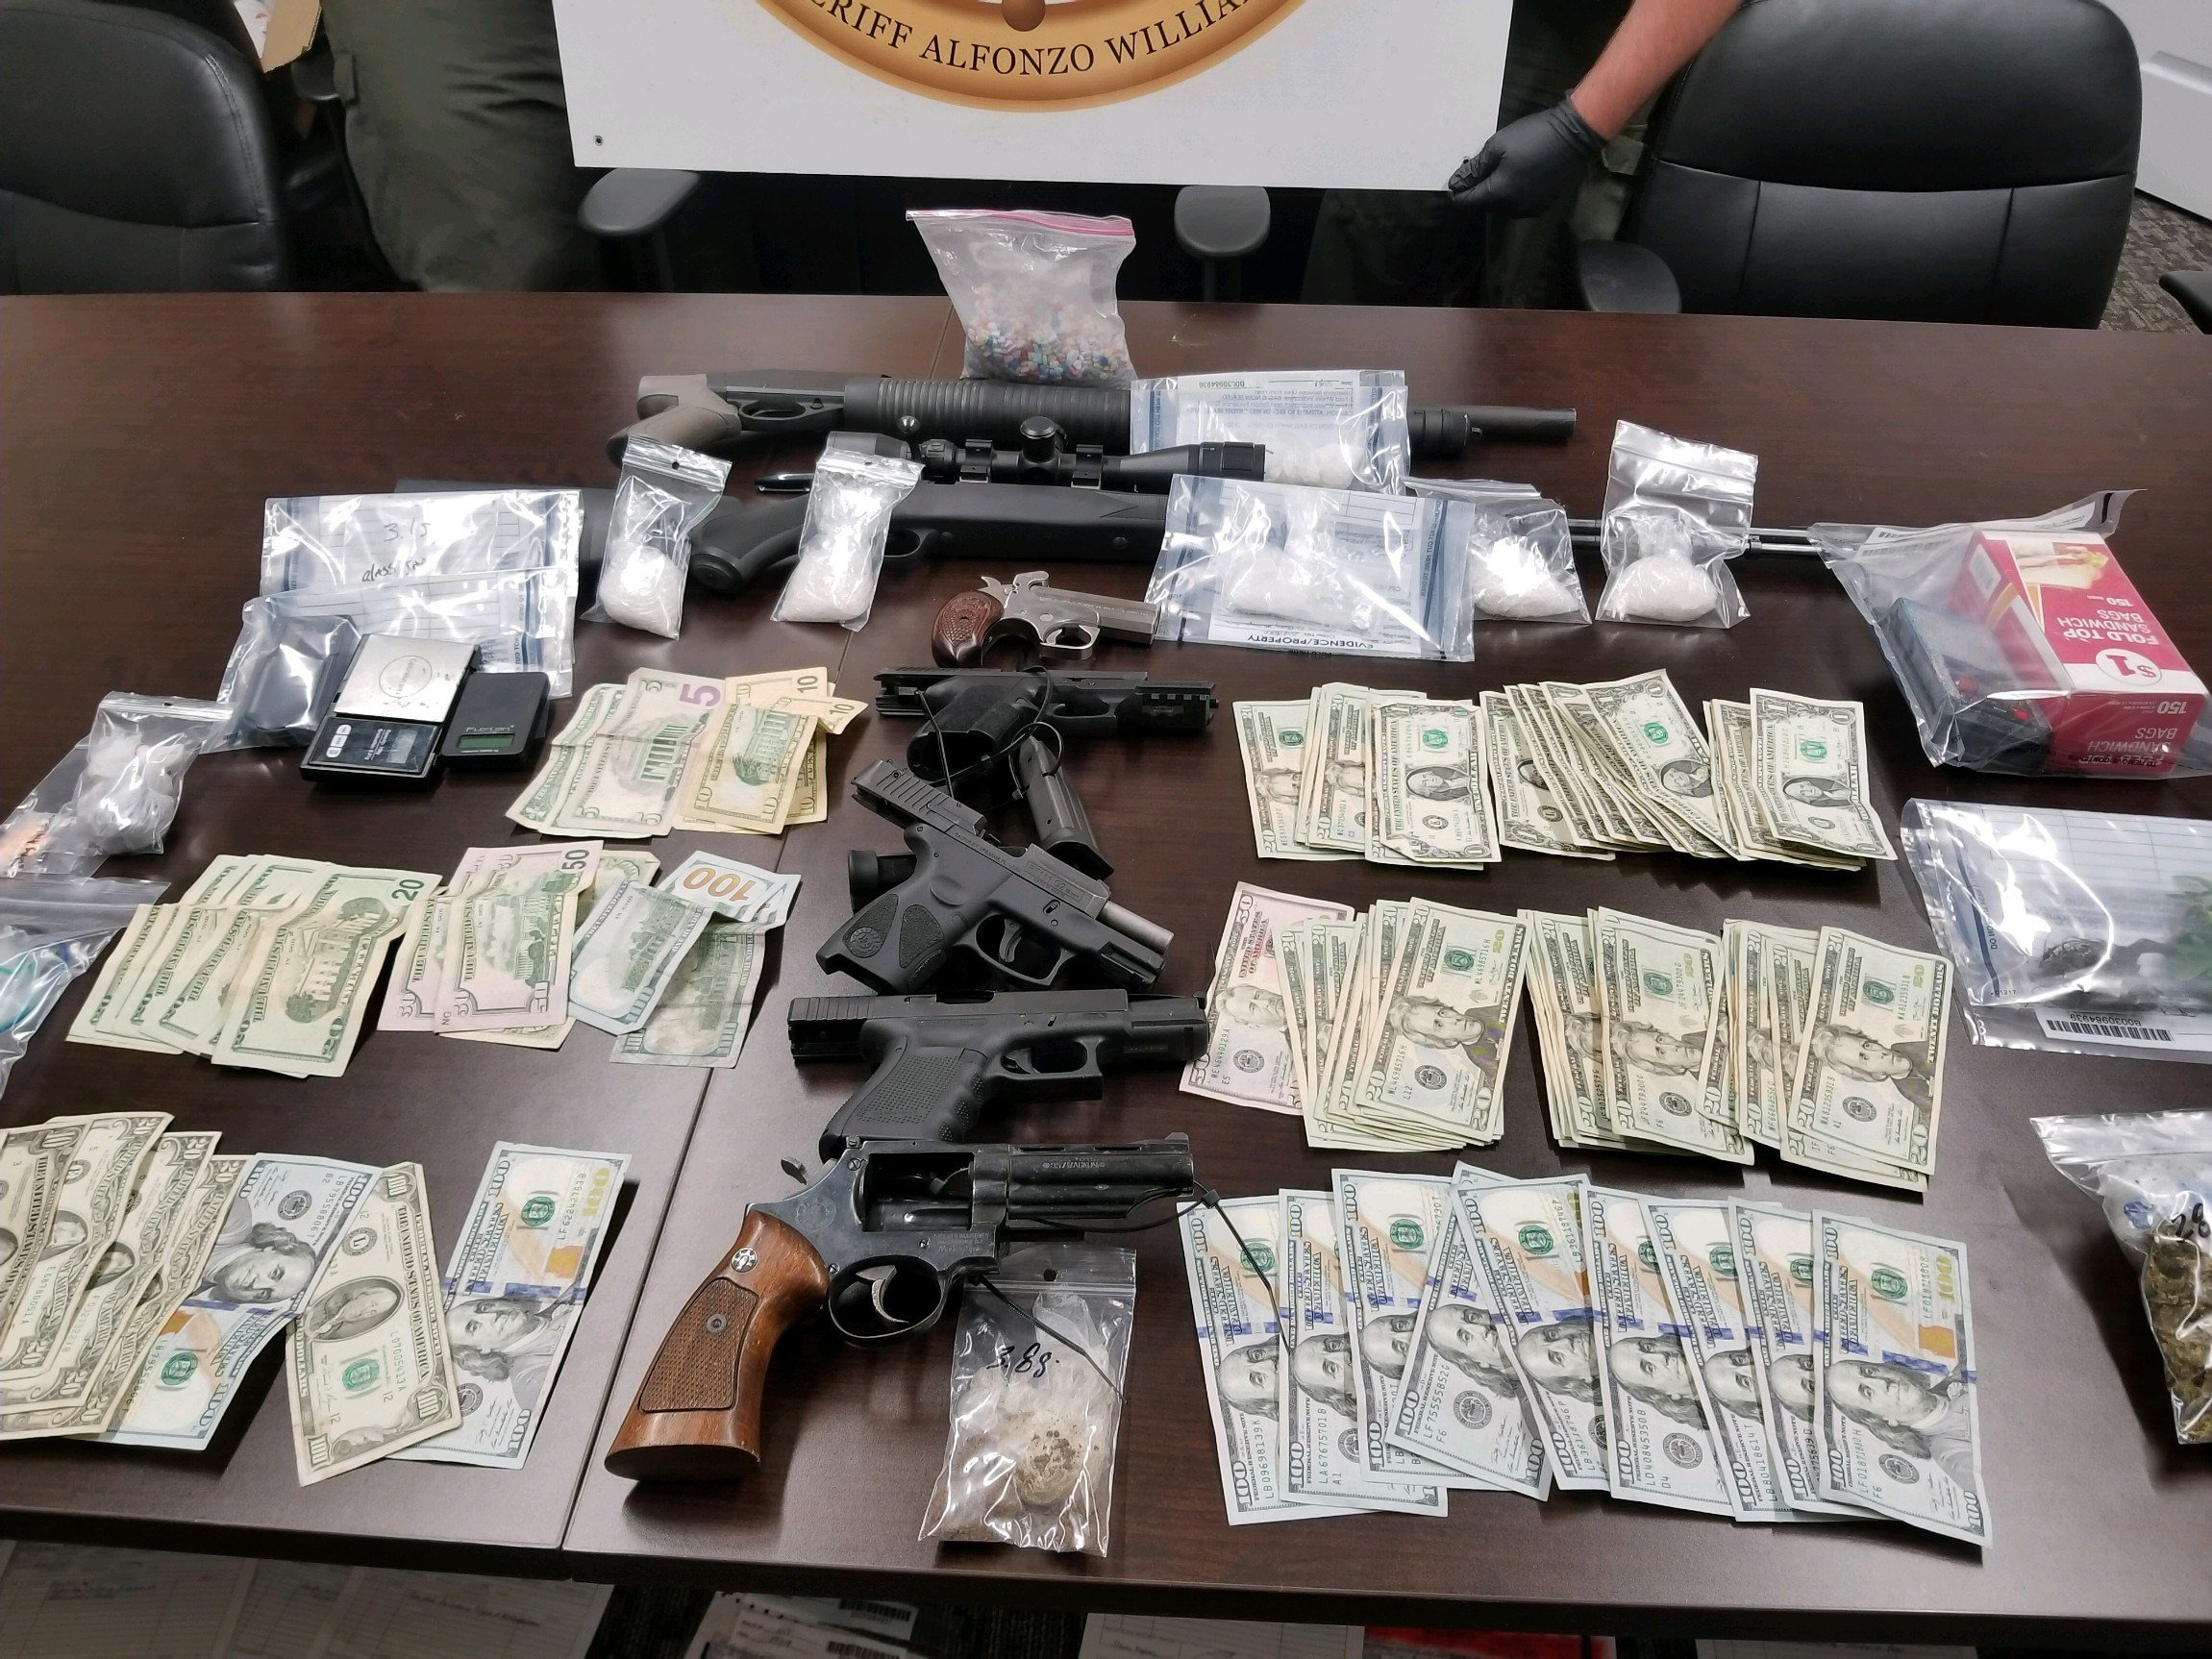 Drugs, cash, and guns seized in Farmer's Bridge Cir. home (source: Burke County Sheriff's Office)